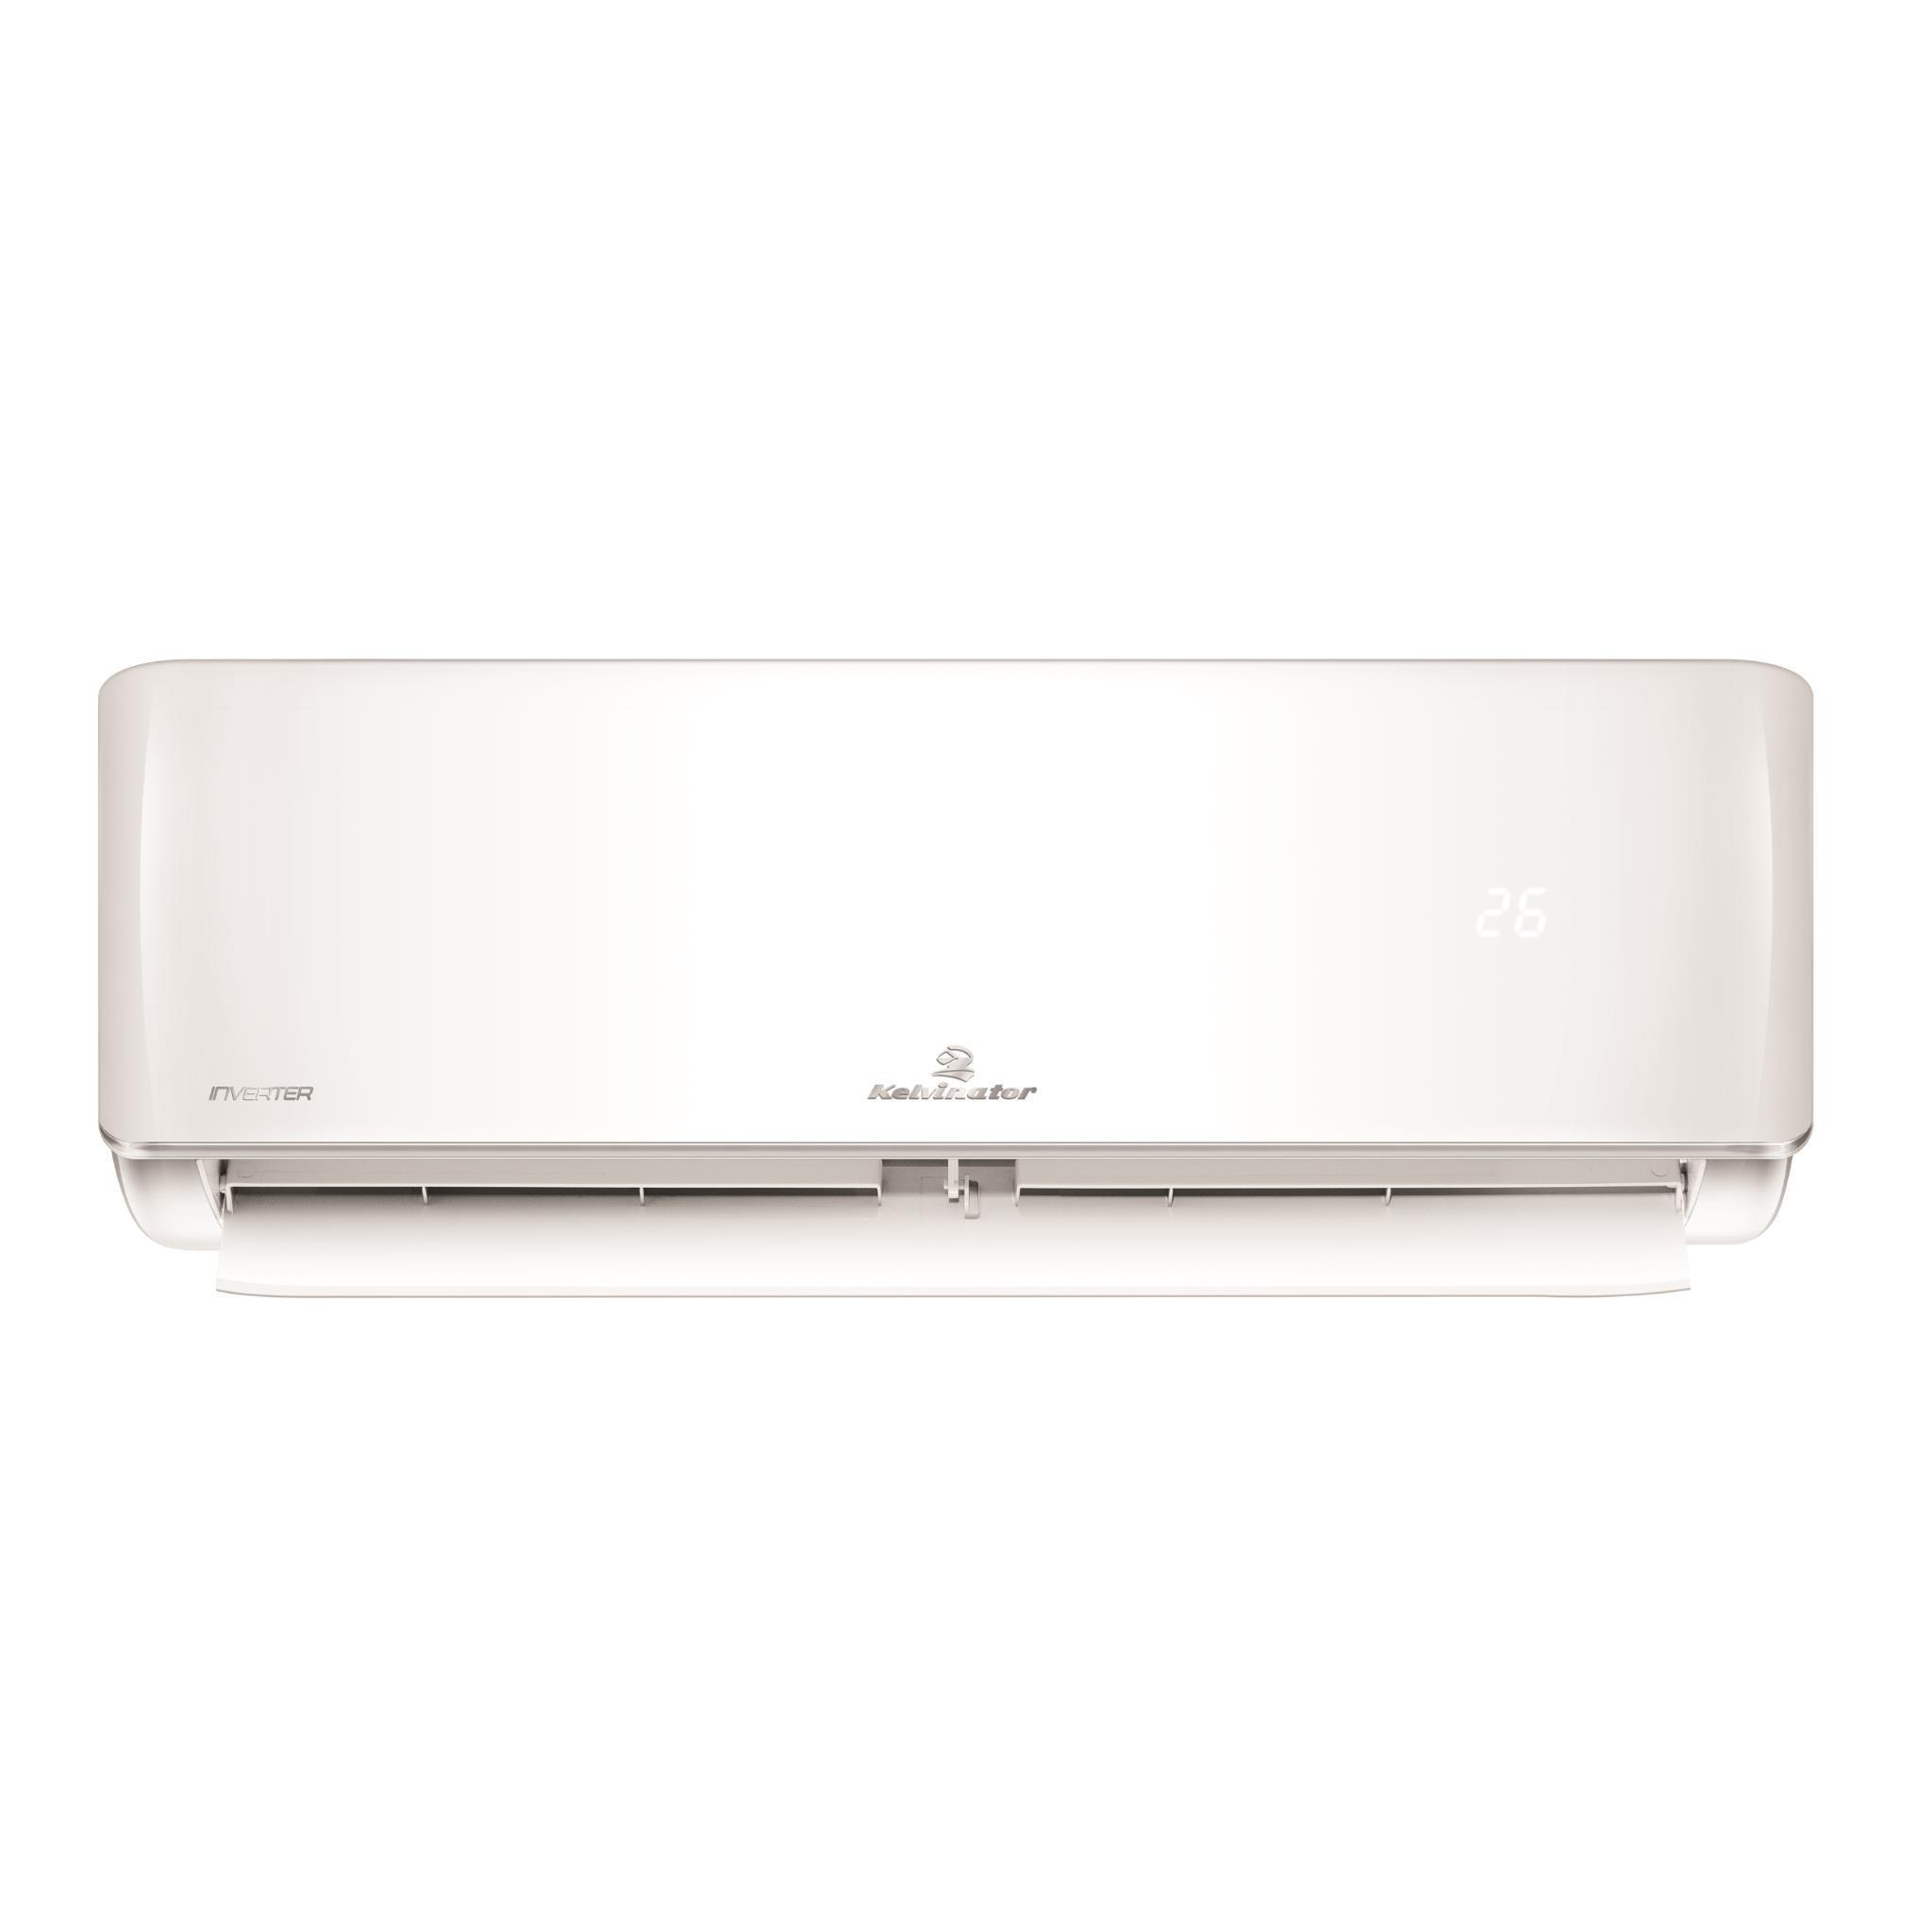 Kelvinator 7.1kW Split System Reverse Cycle Air Conditioner with Wireless Connectivity